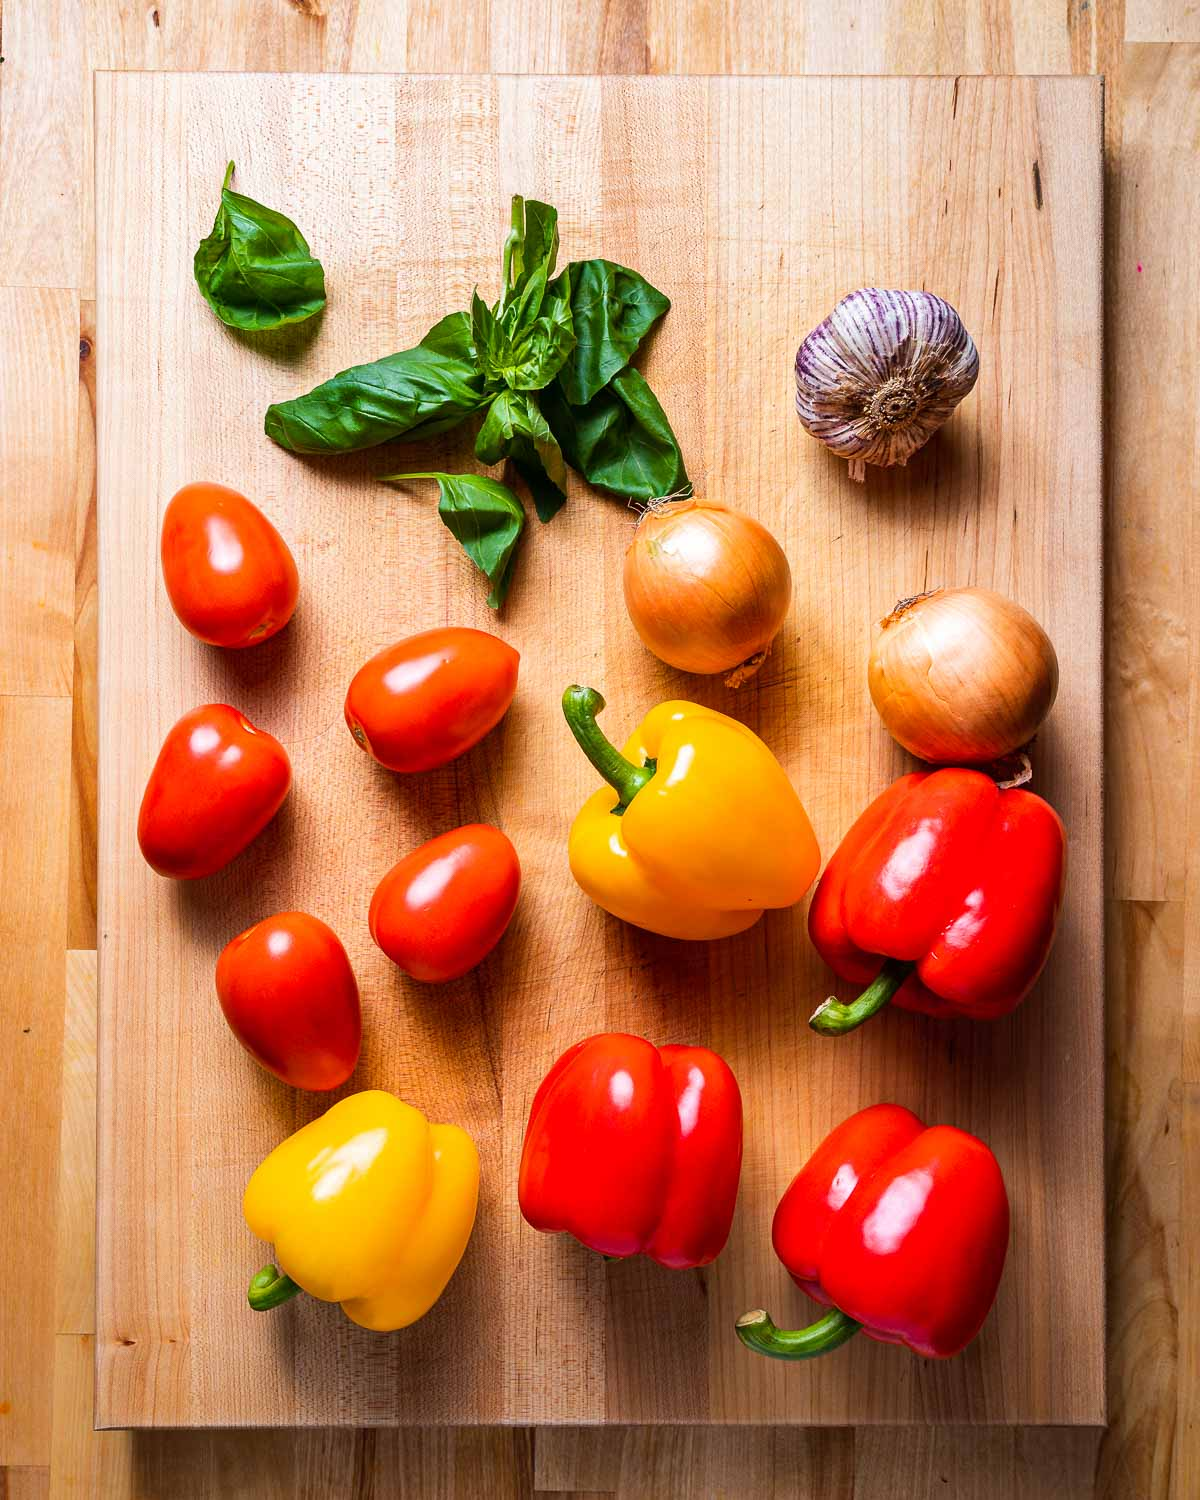 Ingredients shown: basil, garlic, tomatoes, onions, and bell peppers.